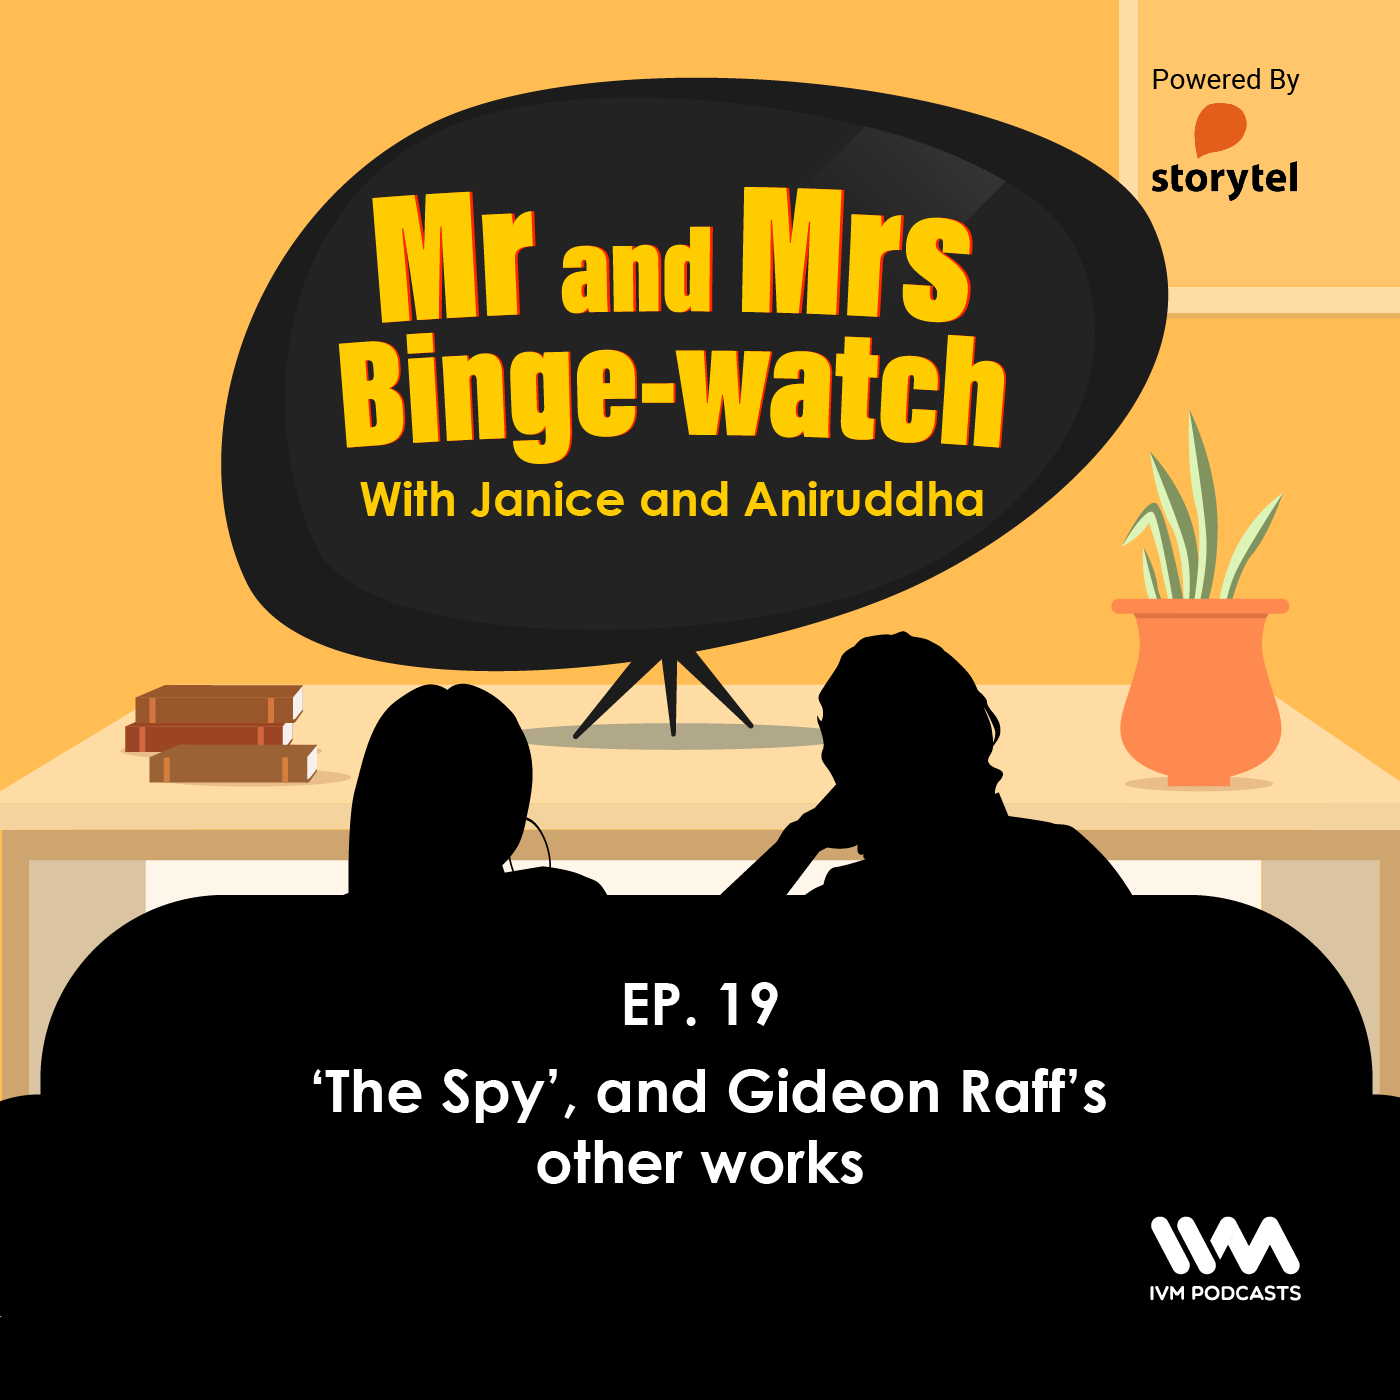 Ep. 19: 'The Spy', and Gideon Raff's other works